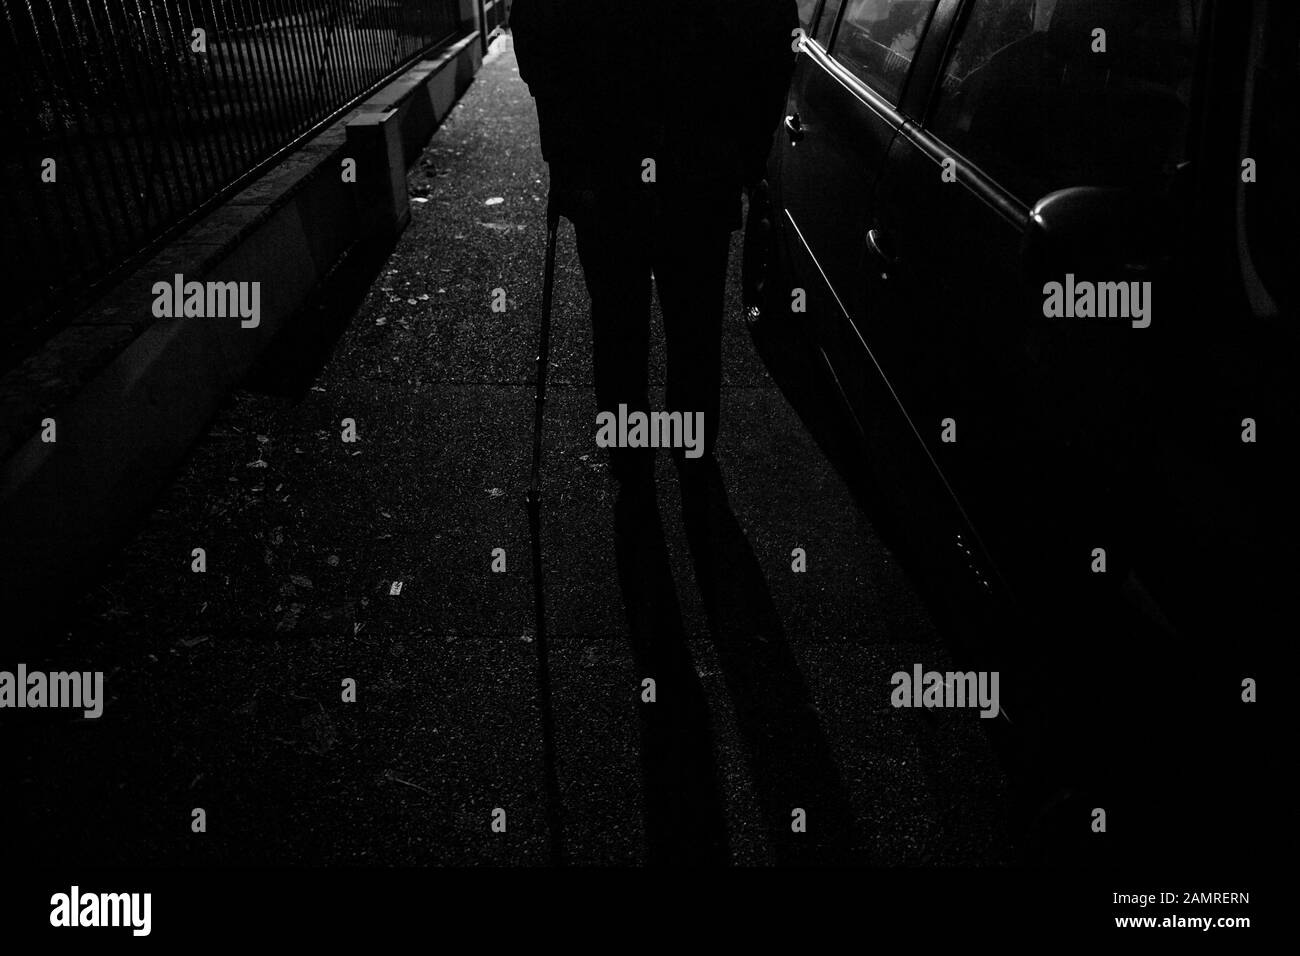 Black and white scene of Silhouette of senior man walking on French street using walking stick preserving equilibrium with blue ane Medical assistance and rehabilitation Stock Photo